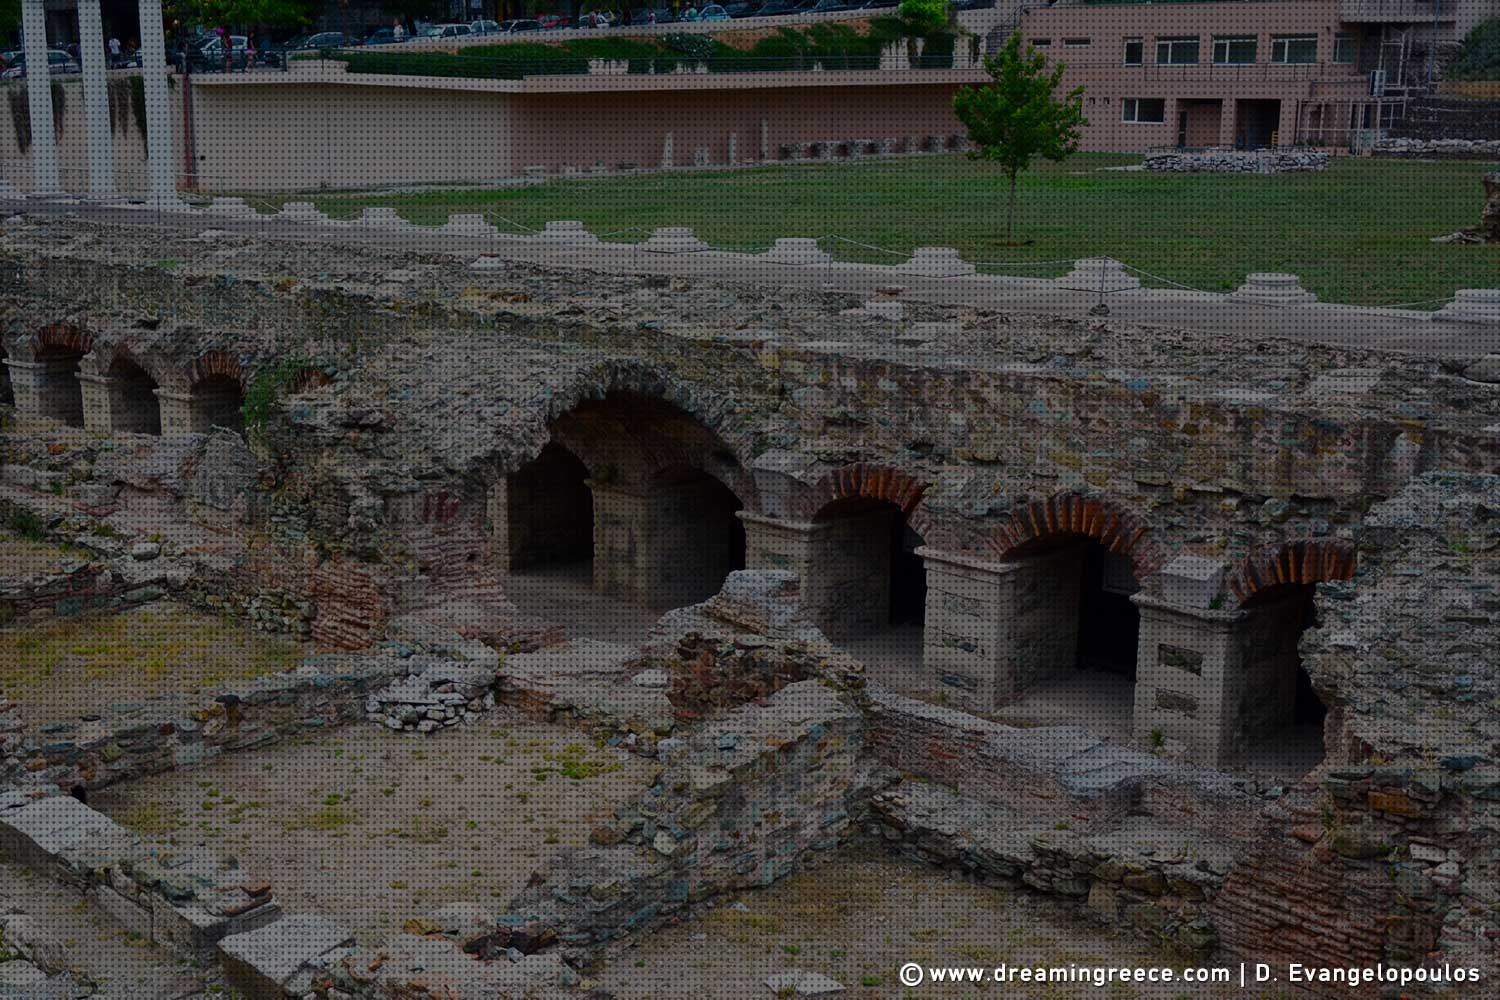 Thessaloniki's Ancient Agora. Archaeological sites in Greece